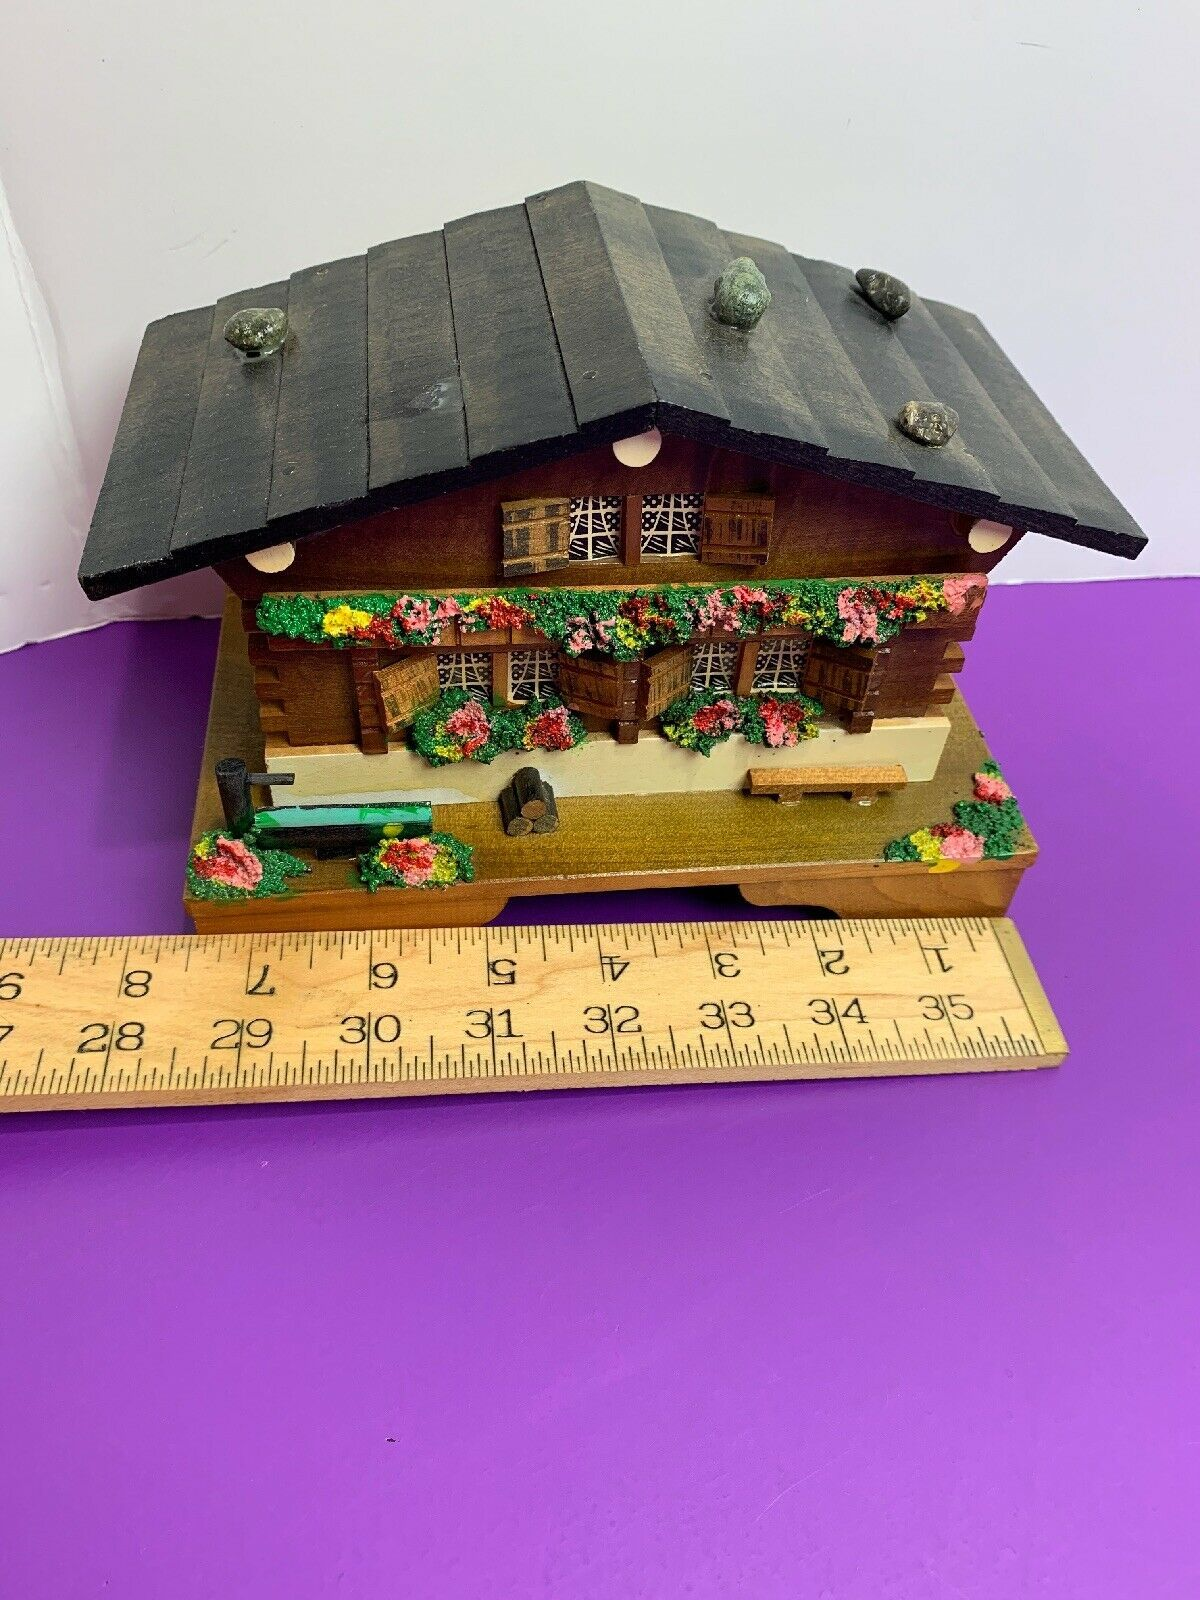 Vintage Wooden Chalet Japan Music Jewelry Box Flowers Well on Porch Rocks Roof